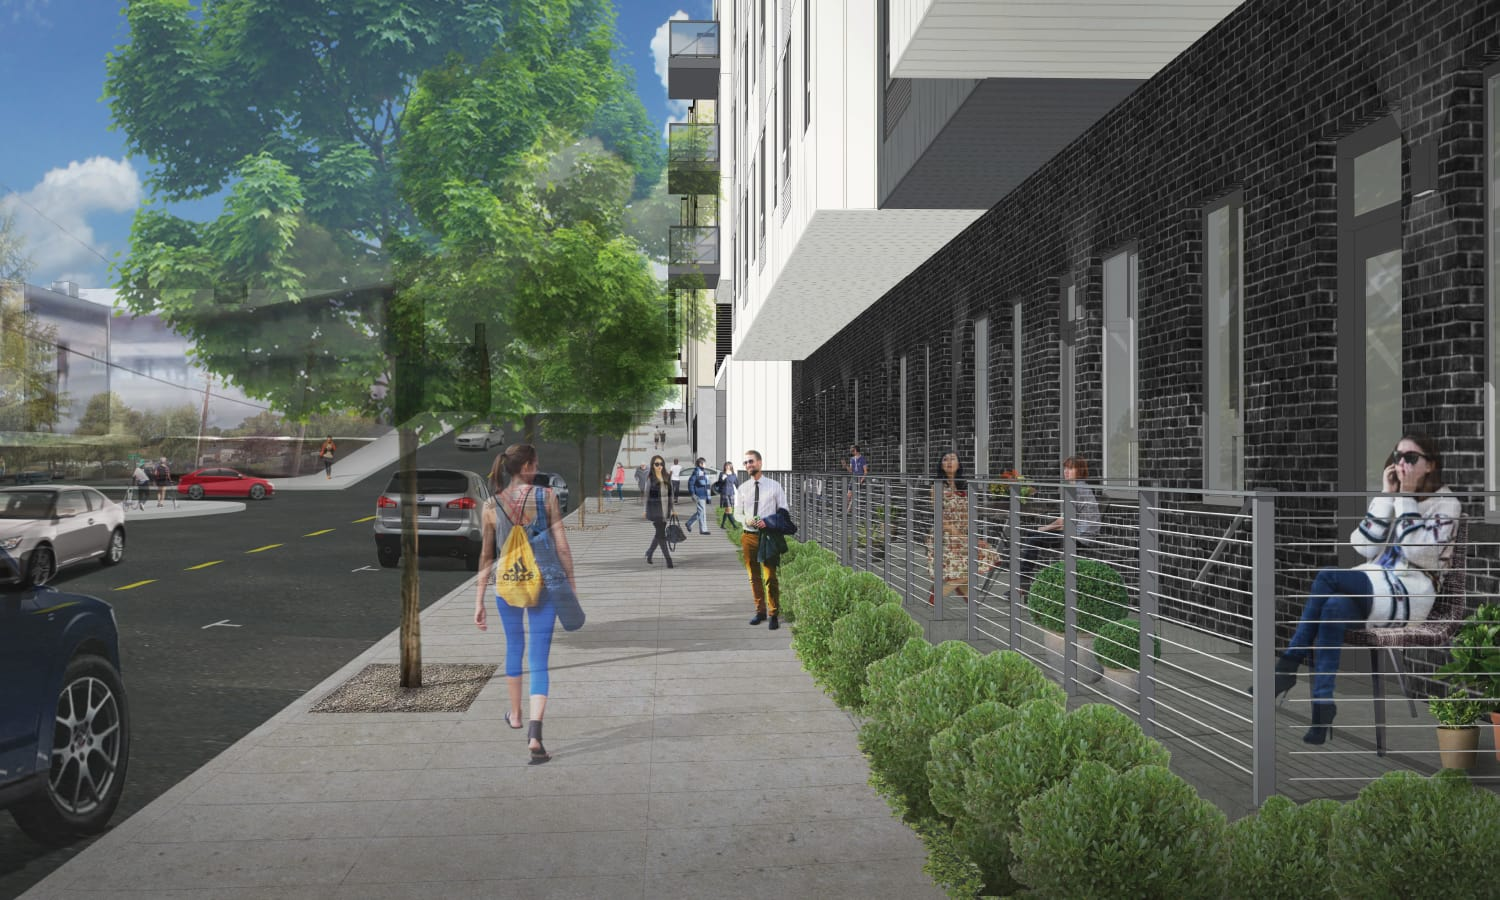 Exterior rendering of ground view at Grant Park Village - Quimby looking north on 32nd in Portland, OR